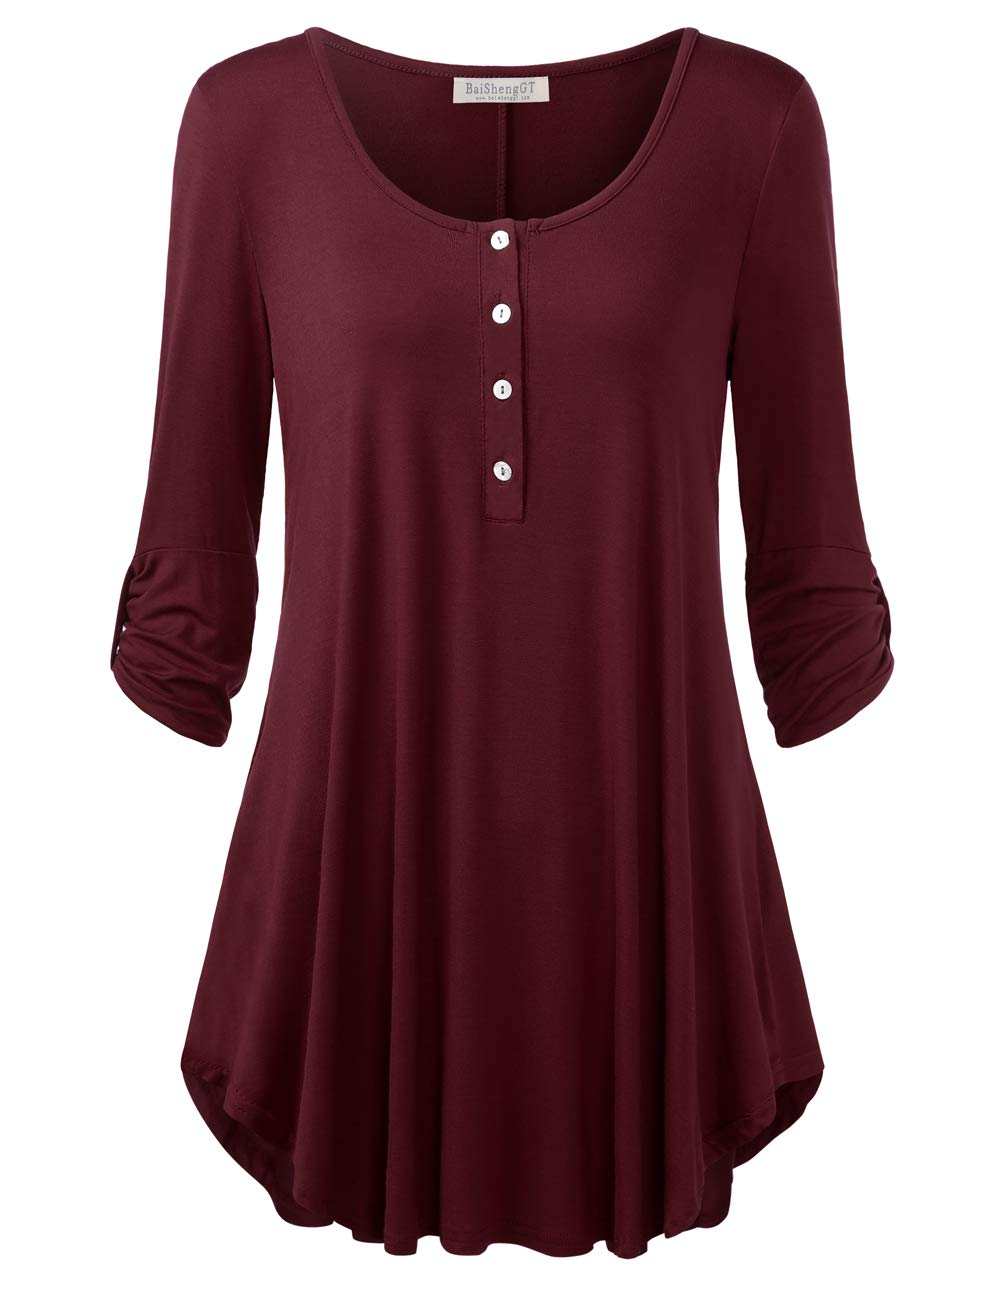 BaiShengGT Women's 3/4 Sleeve Button up Loose Fit Swing Tunic Tops T Shirt Purplish Red Large